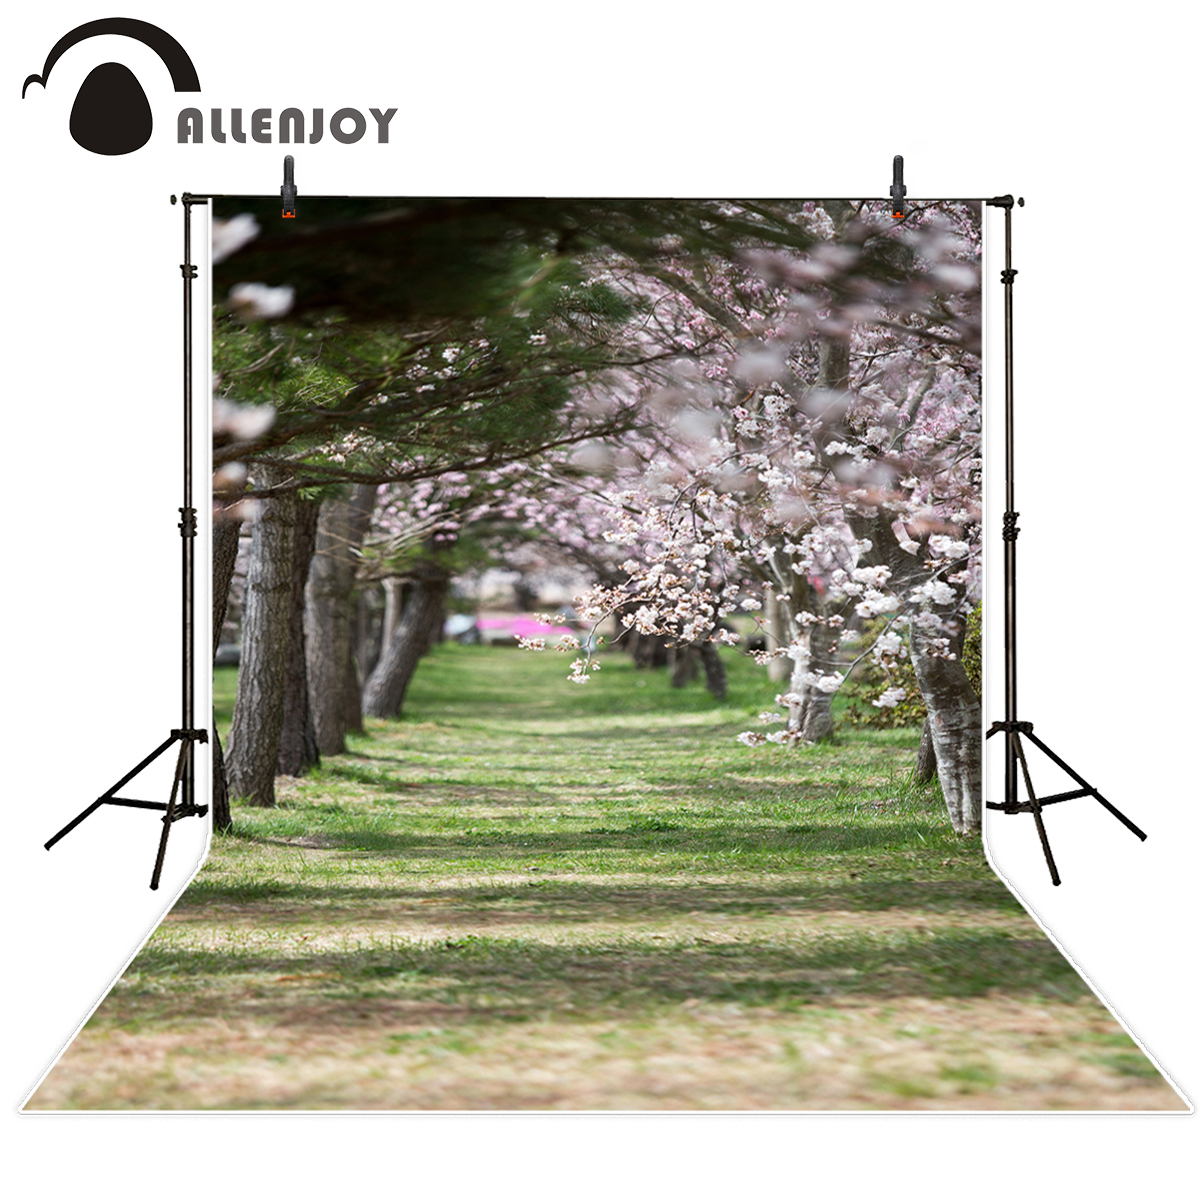 Allenjoy photography background grass lawn and cherry blossoms spring Funds for newborn background for photographic studio hxt 2045 stylish zipper 3 5mm jack in ear stereo earphone w mic for iphone samsung more black